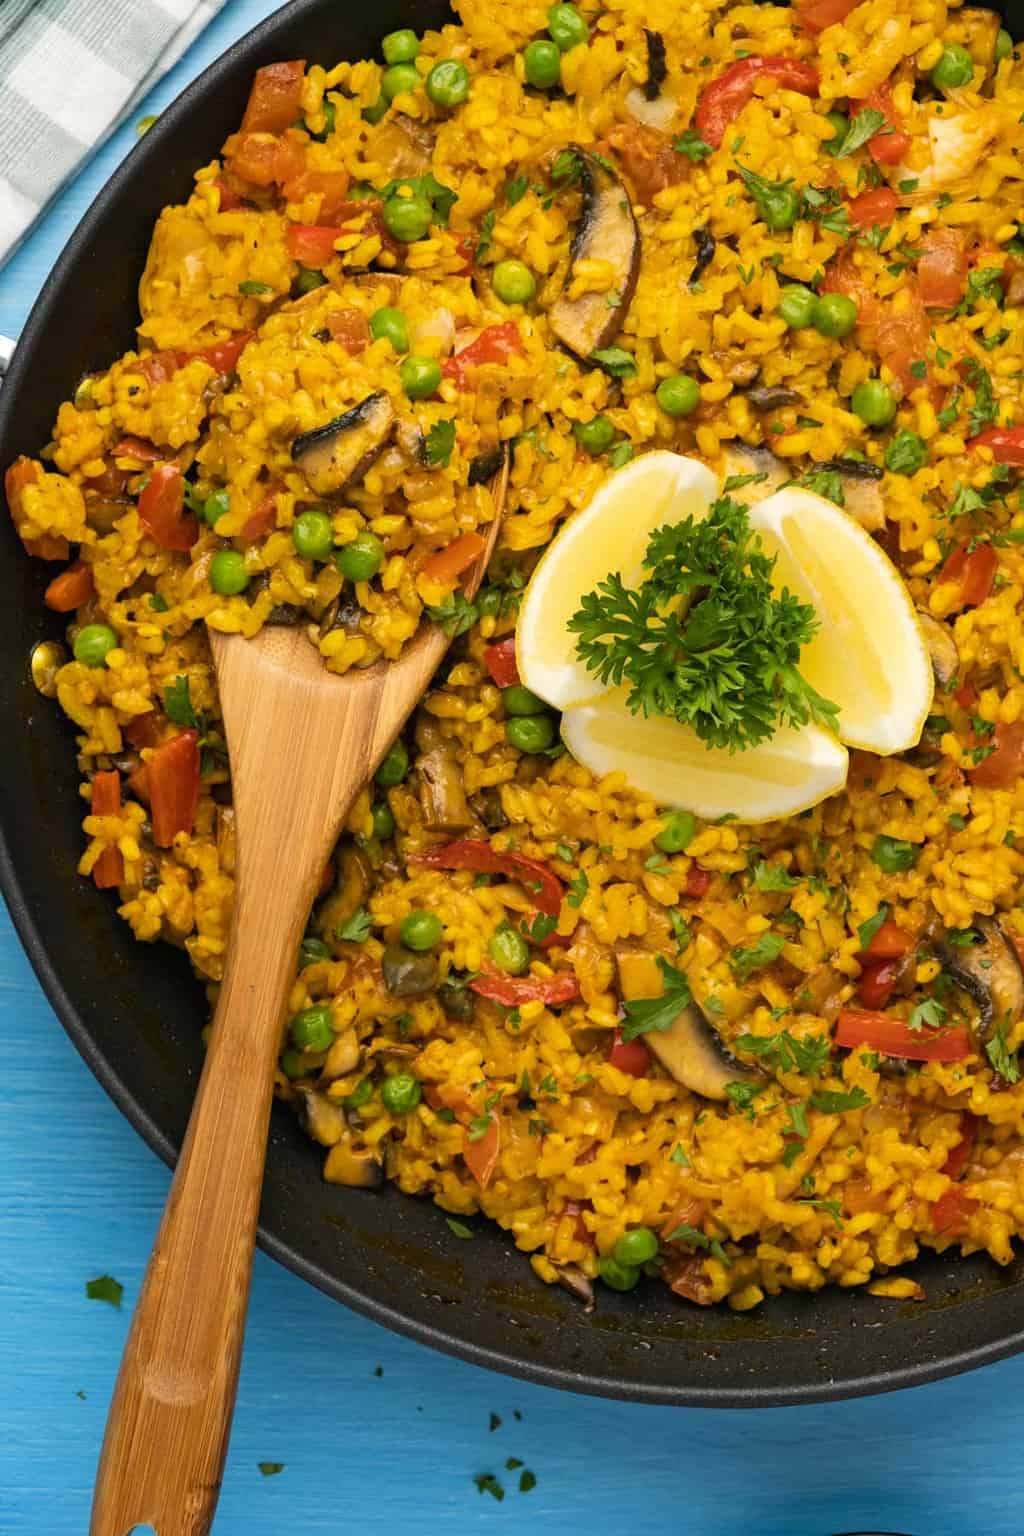 Paella in a black paella pan with a wooden spoon.